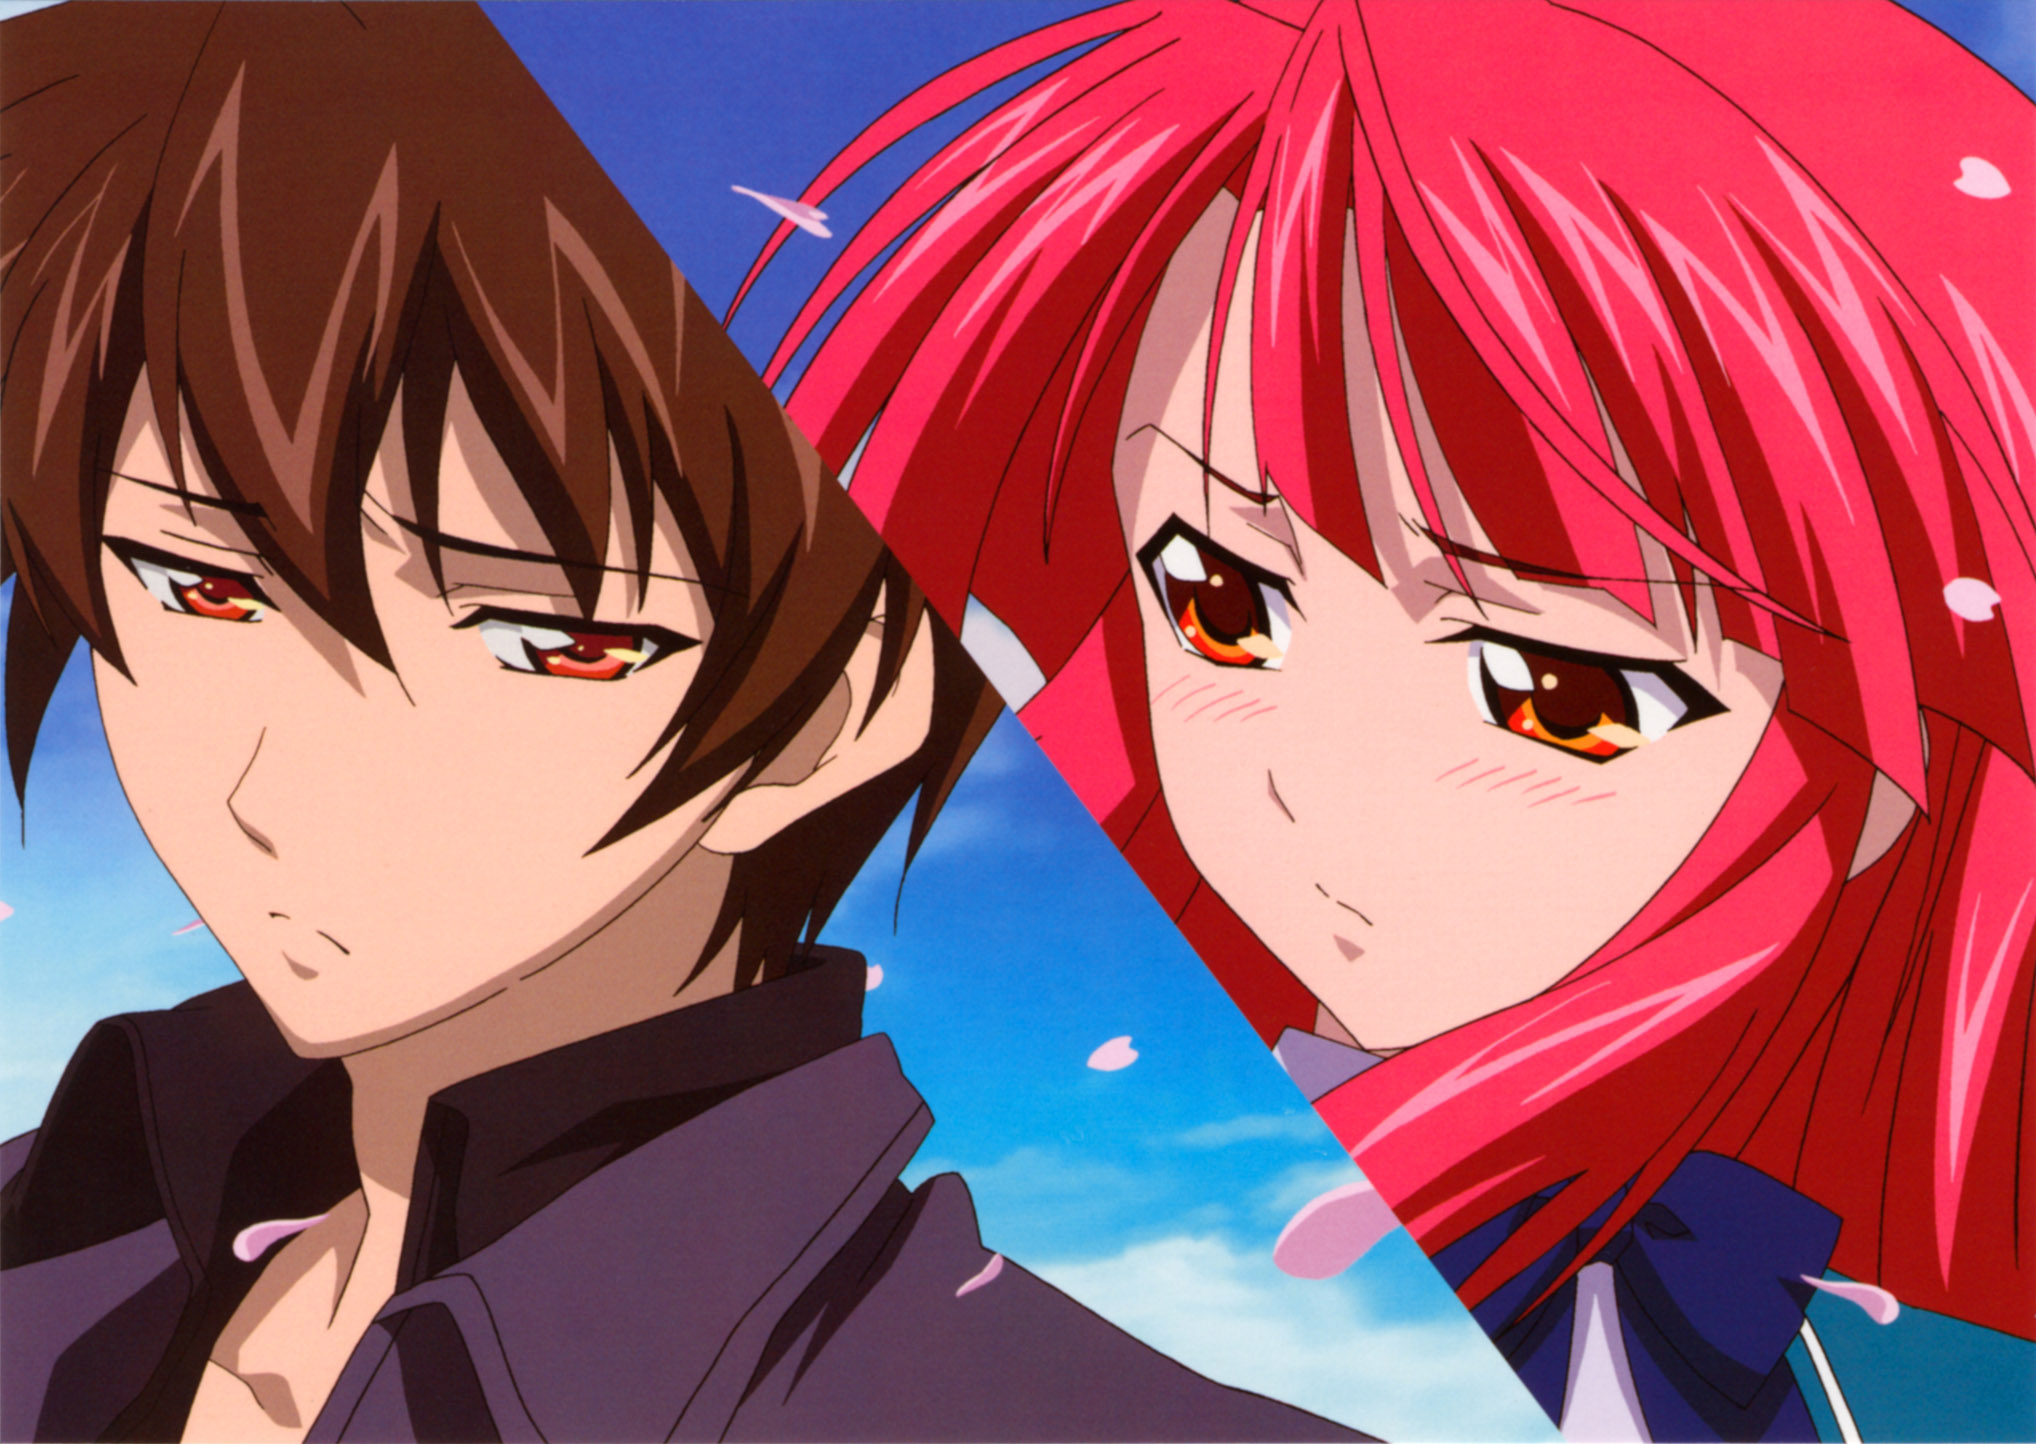 Kazuma X Ayano: KazumaXAyano Images Kazuma HD Wallpaper And Background